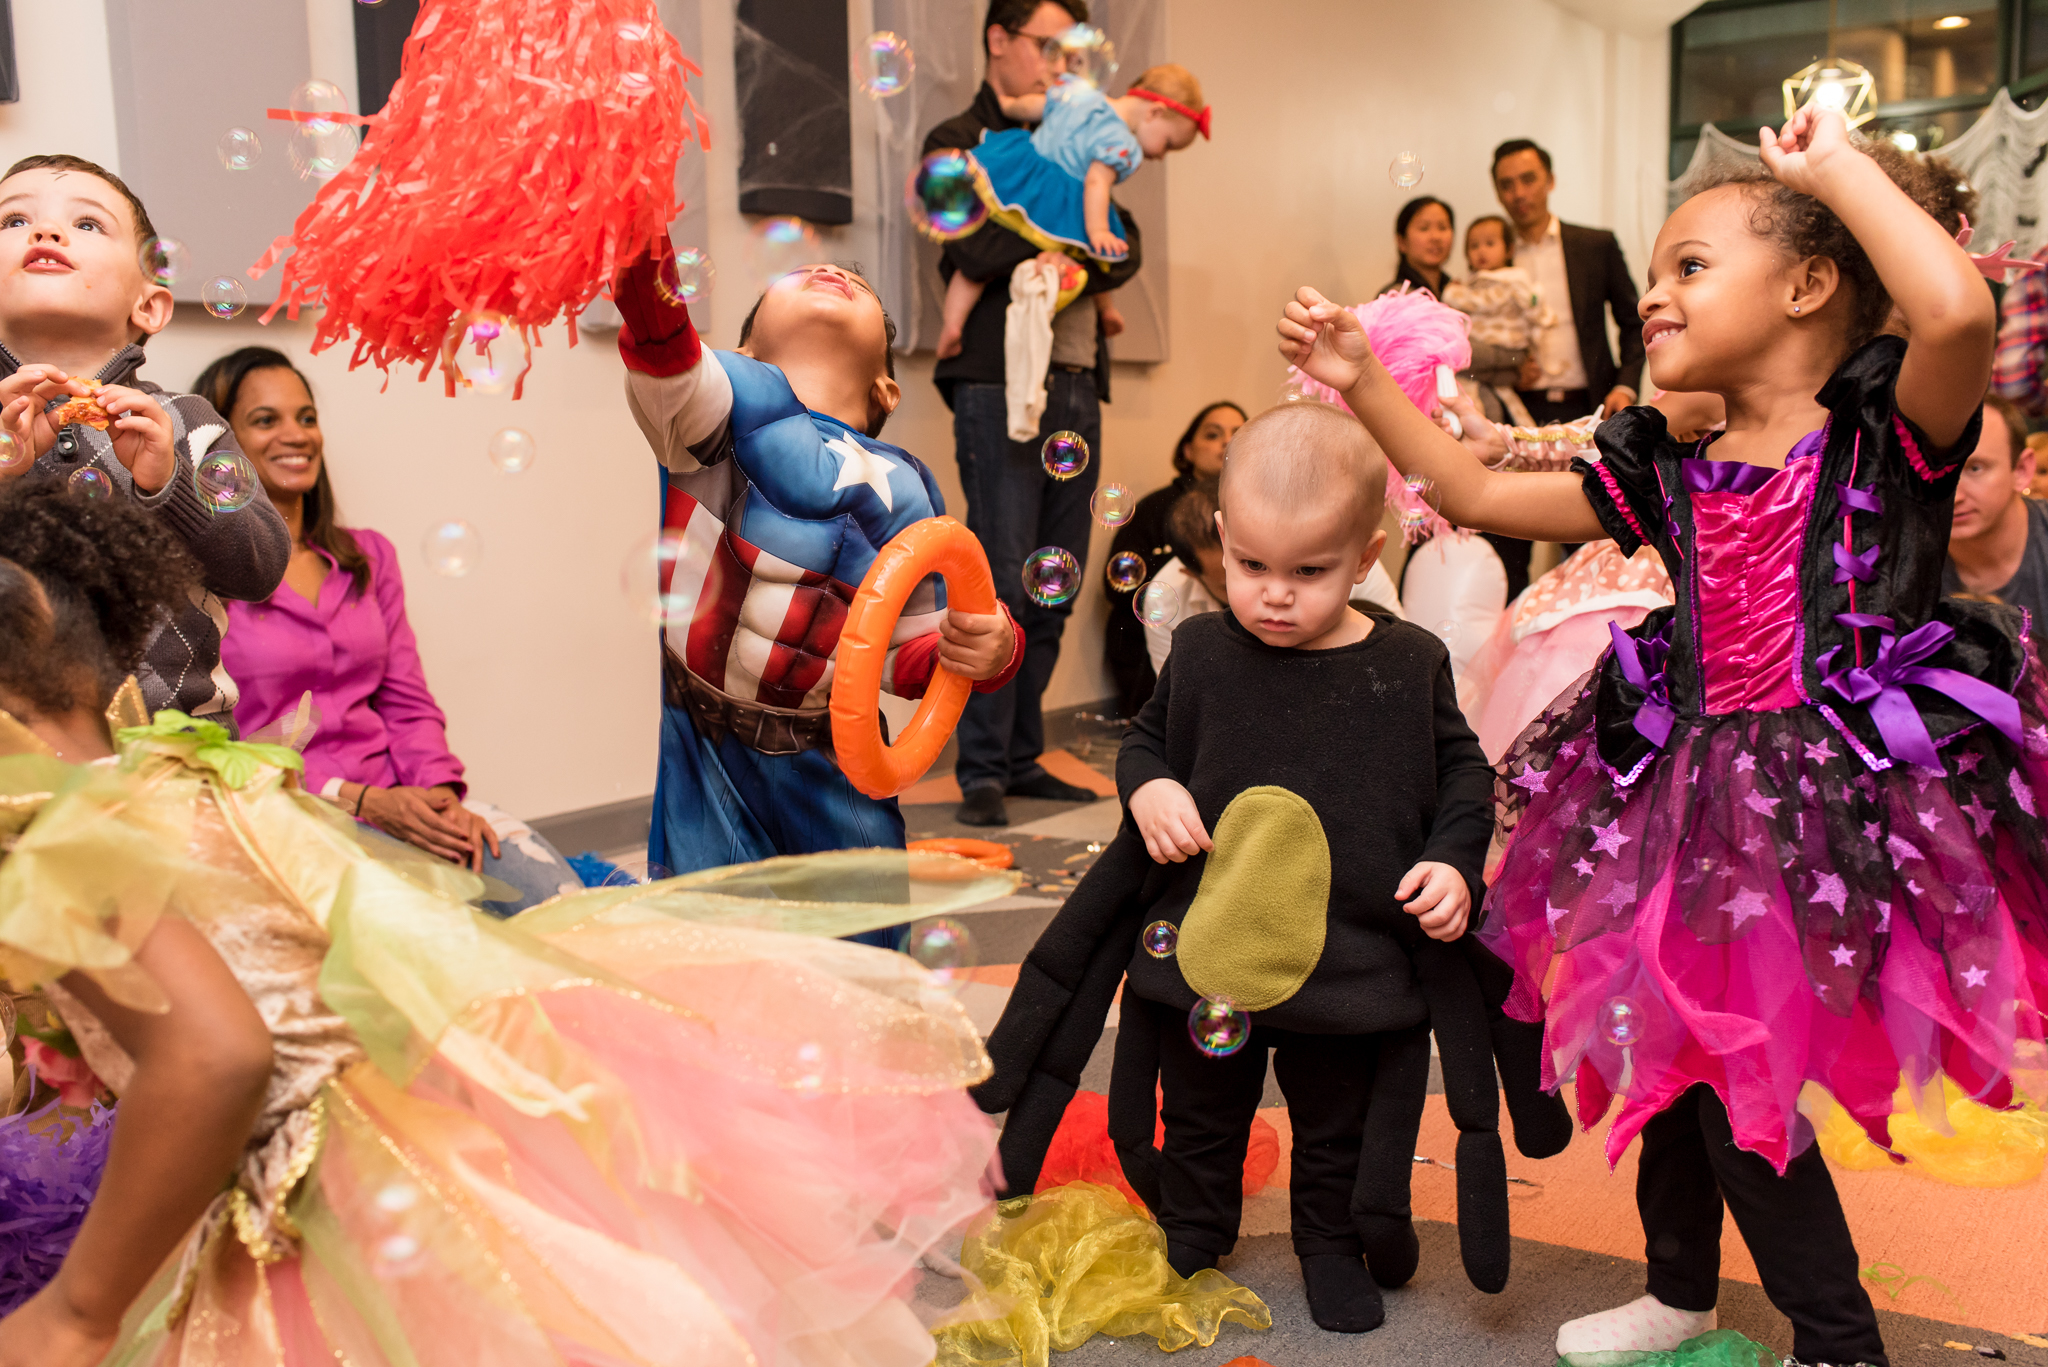 Kids Birthday Parties - We would love to host you and your little guests at Tiny Tunes Studio. Just fill out the form on our Parties page and come celebrate with us!LEARN MORE